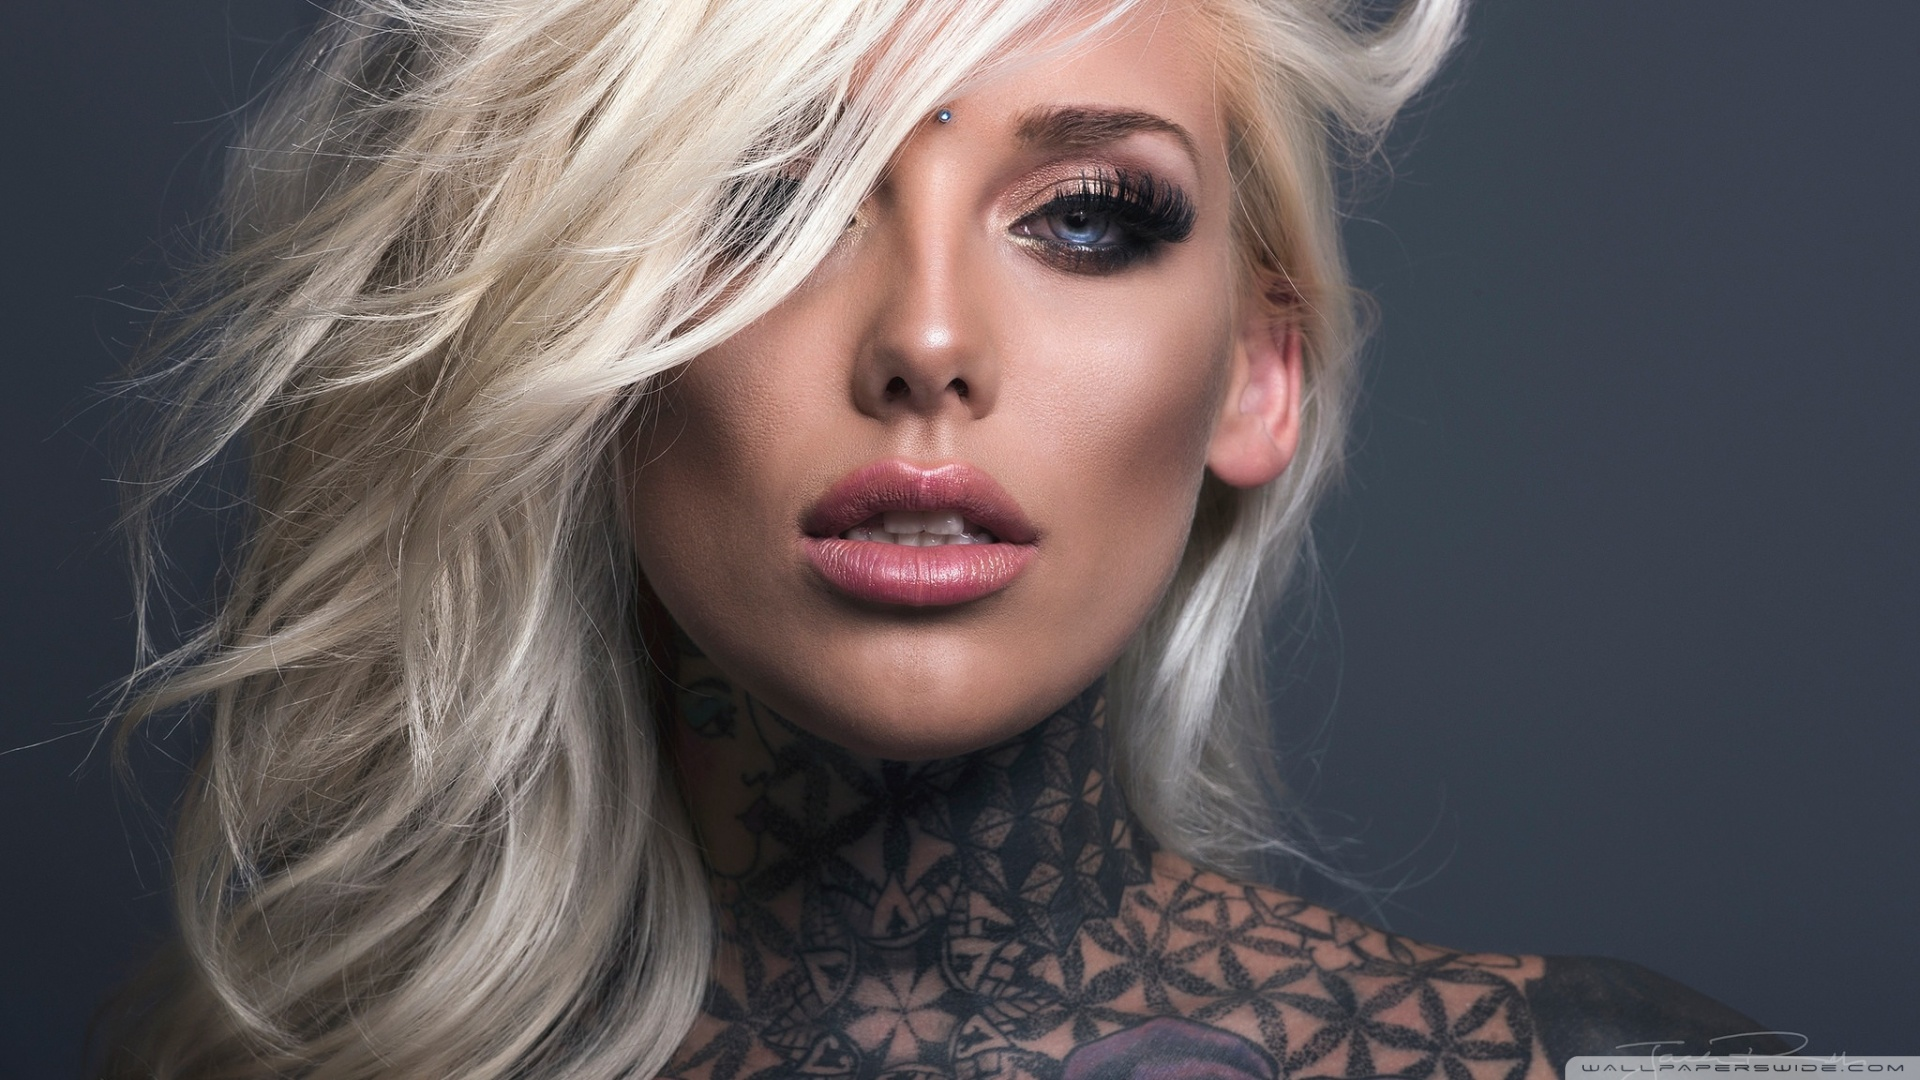 Tattoo Girl Wallpaper Hd Posted By Christopher Mercado